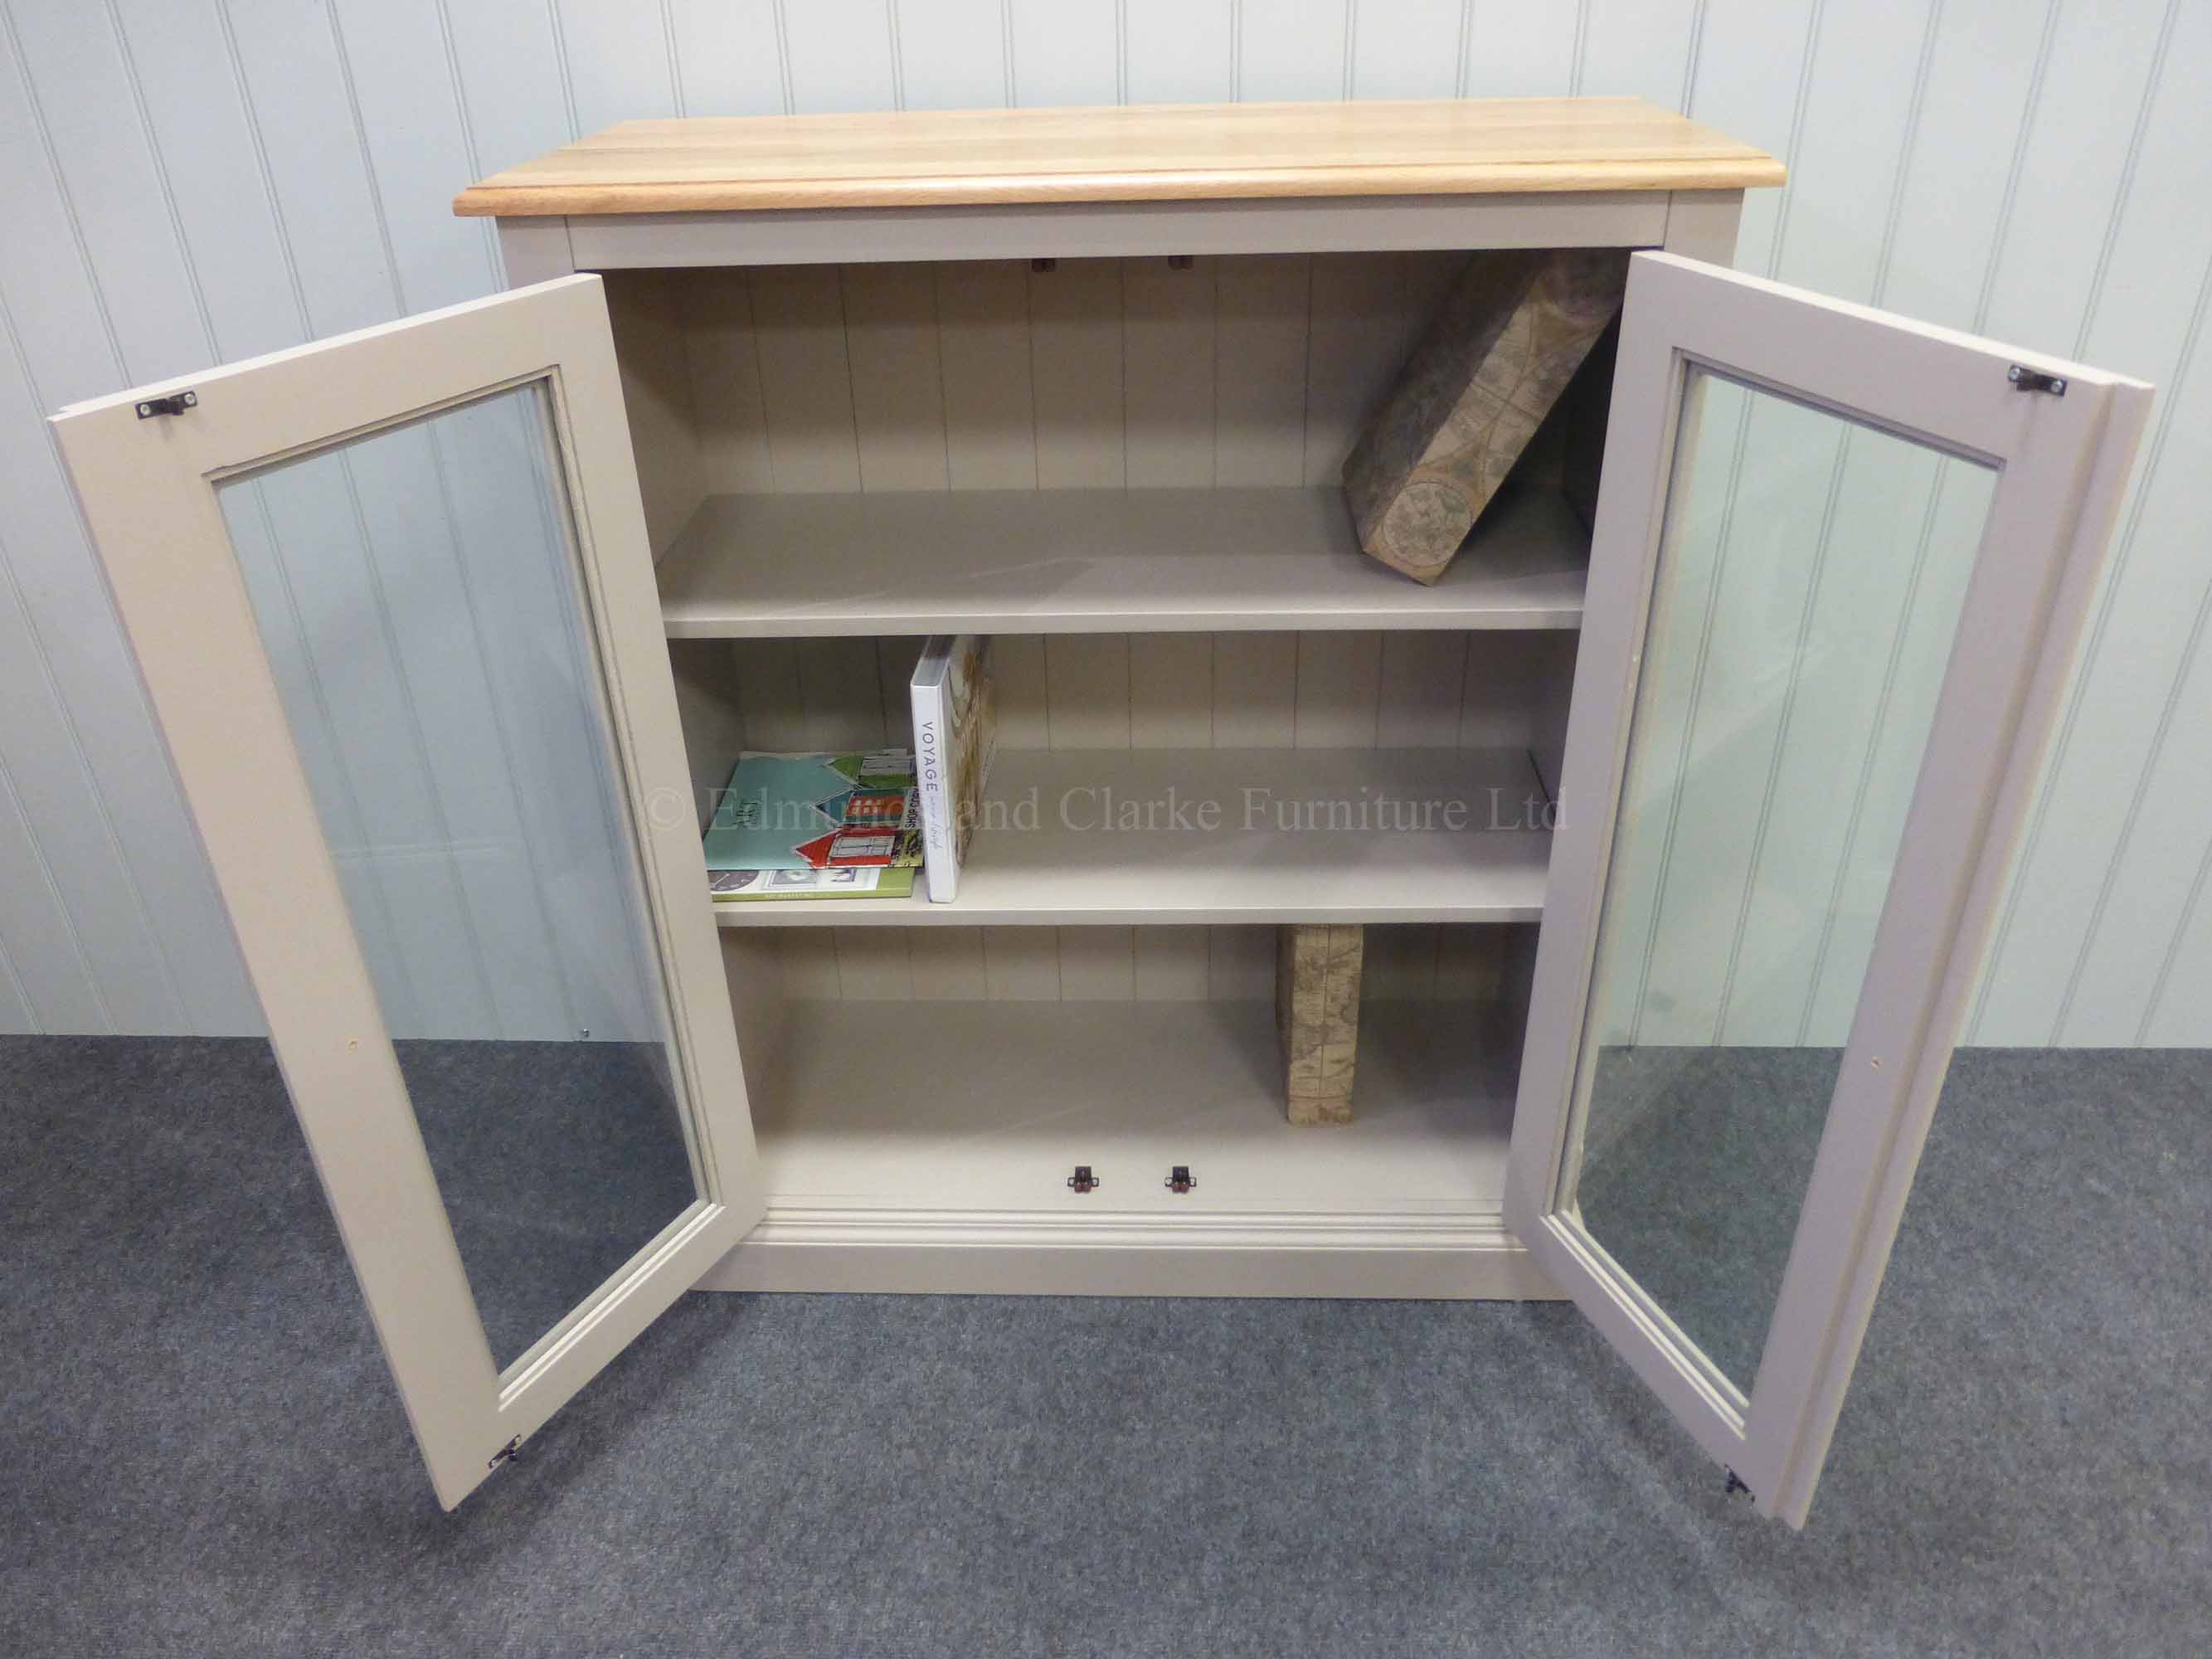 Two door glazed bookcase, painted in a choice of paint colours